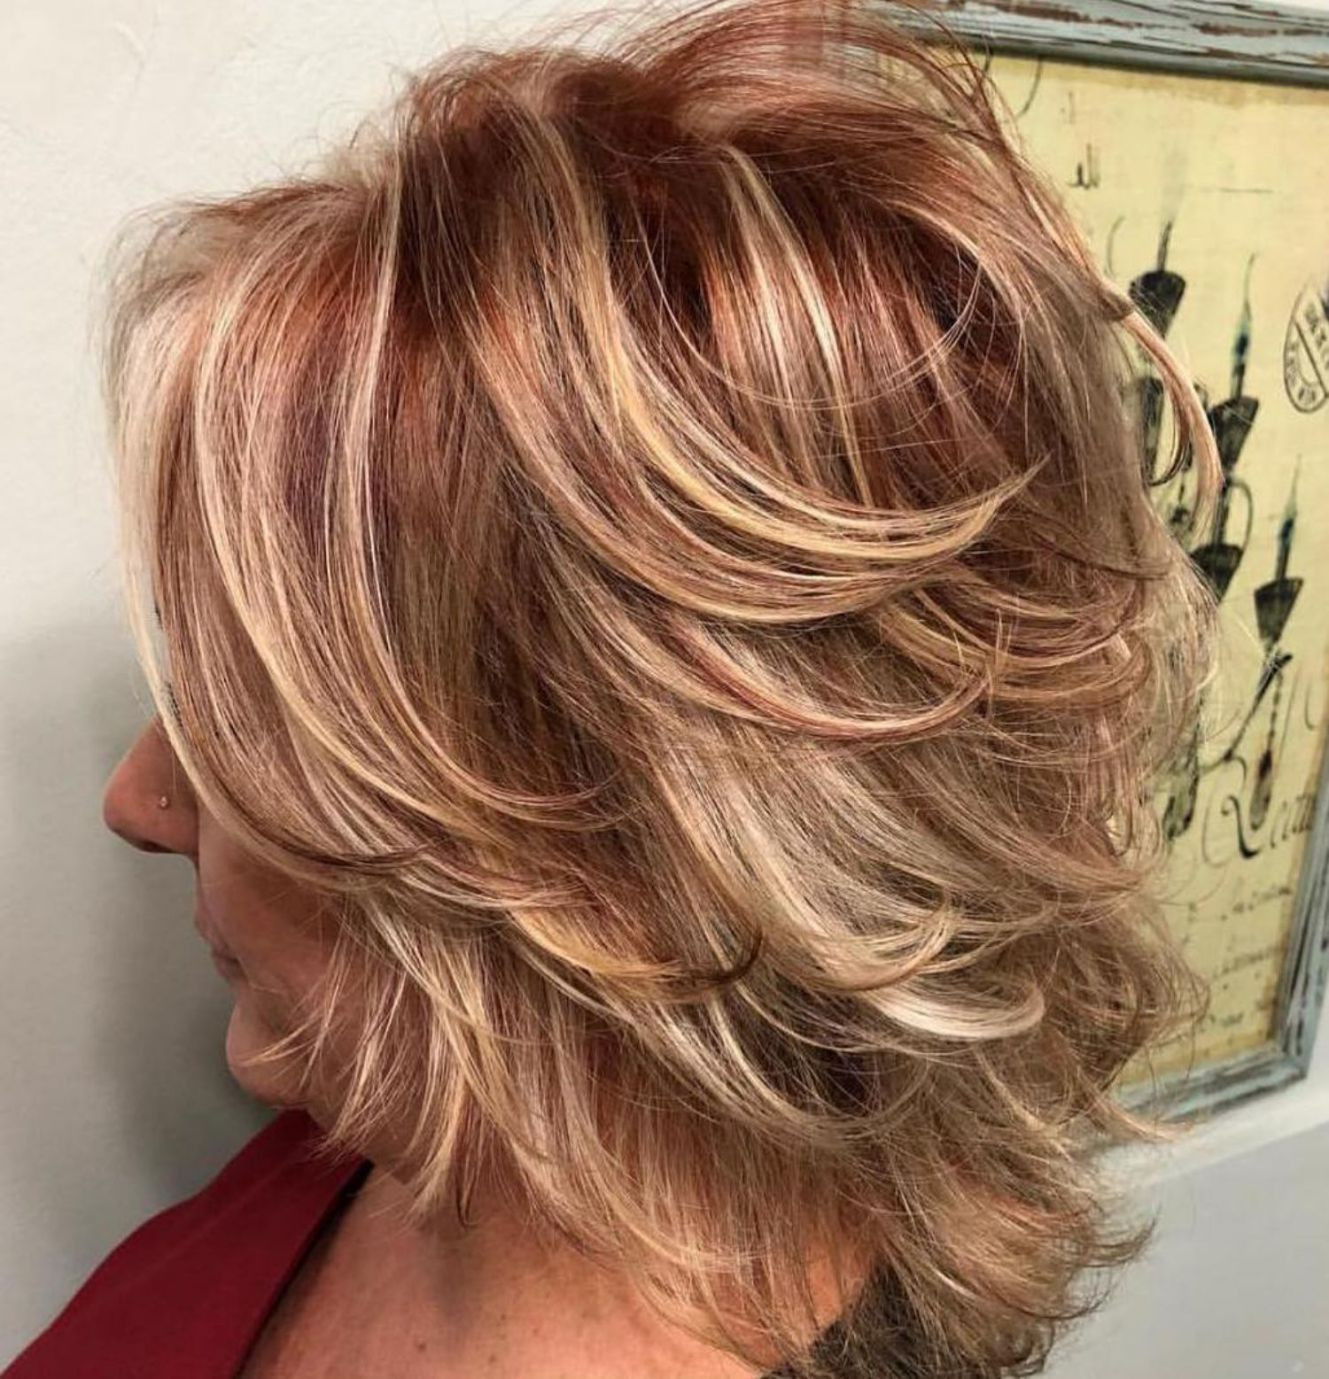 80 Best Modern Hairstyles And Haircuts For Women Over 50 Hair Styles Modern Hairstyles Medium Length Hair Styles